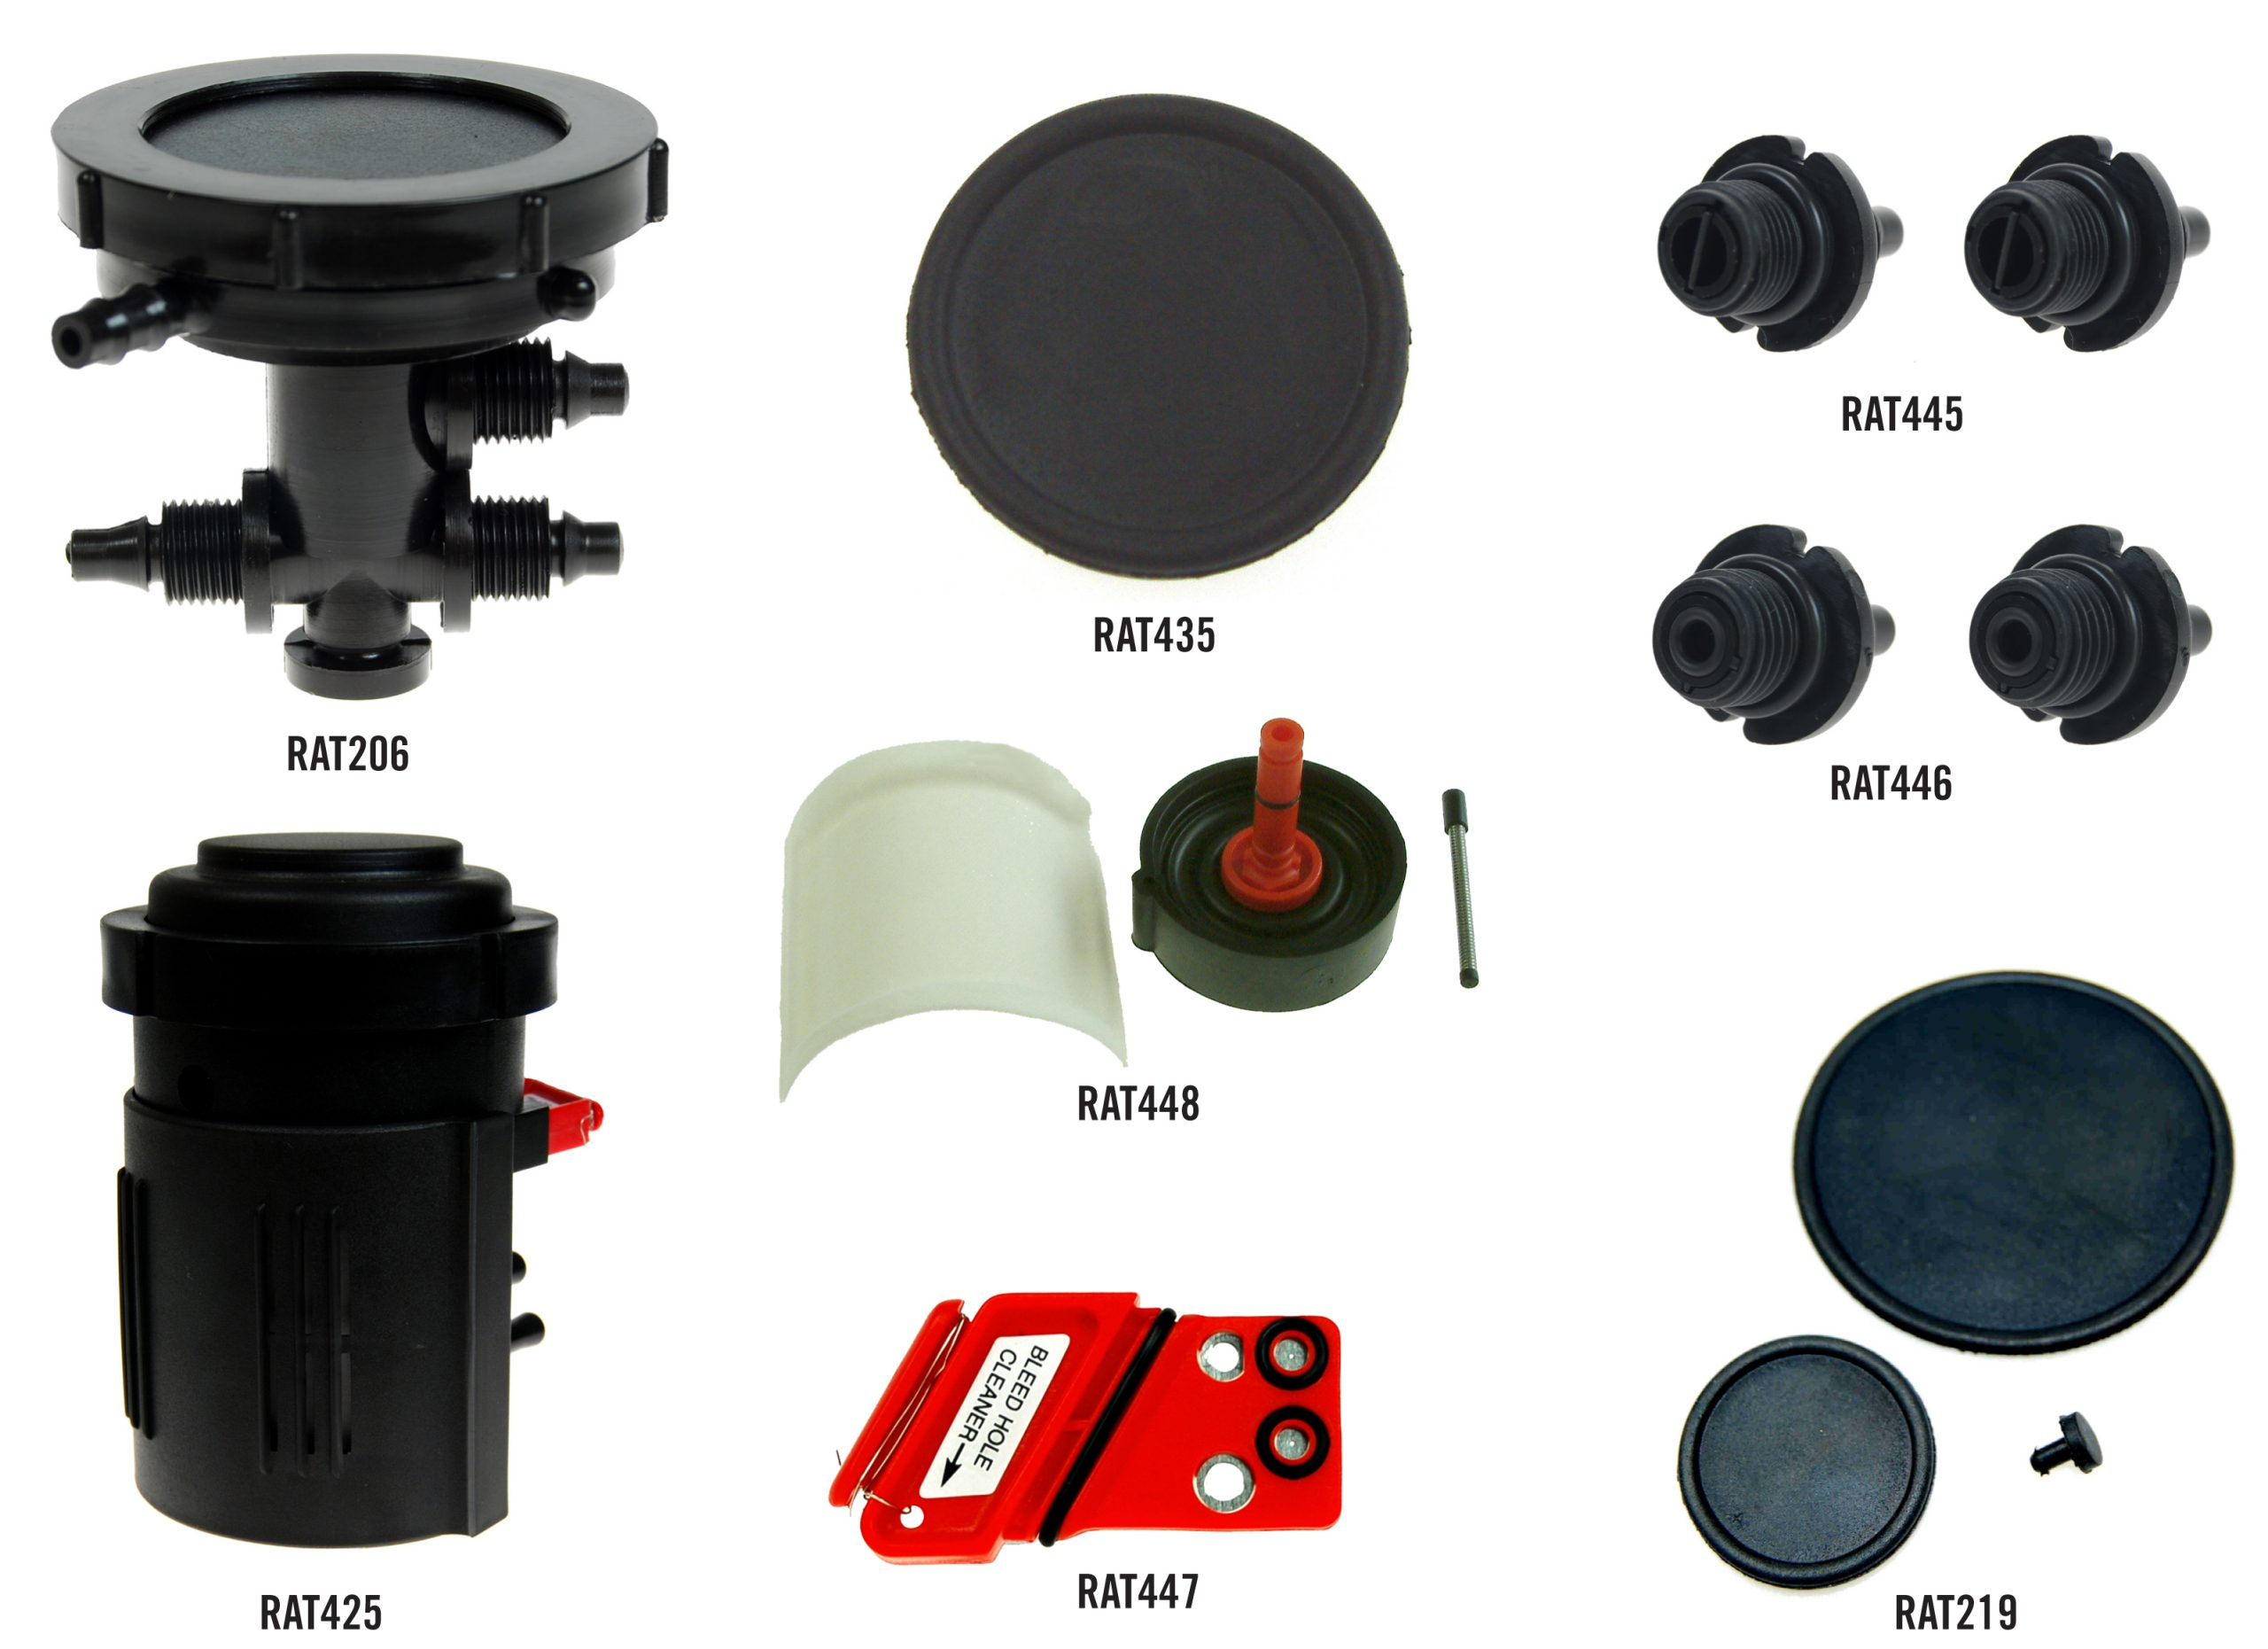 Image of Ambic Accessories and Parts